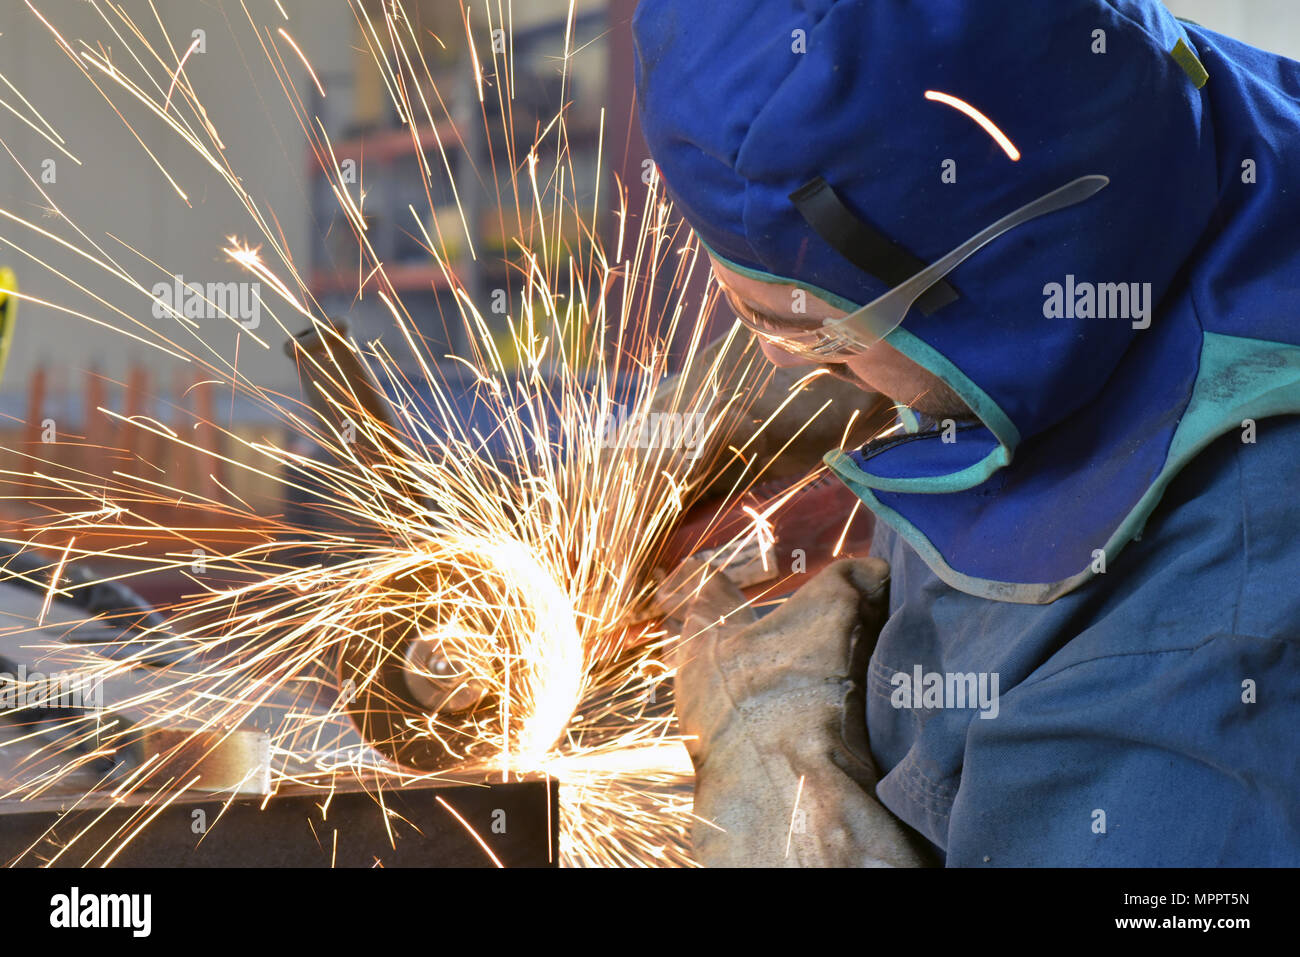 Worker using angle grinder in factory - Stock Image